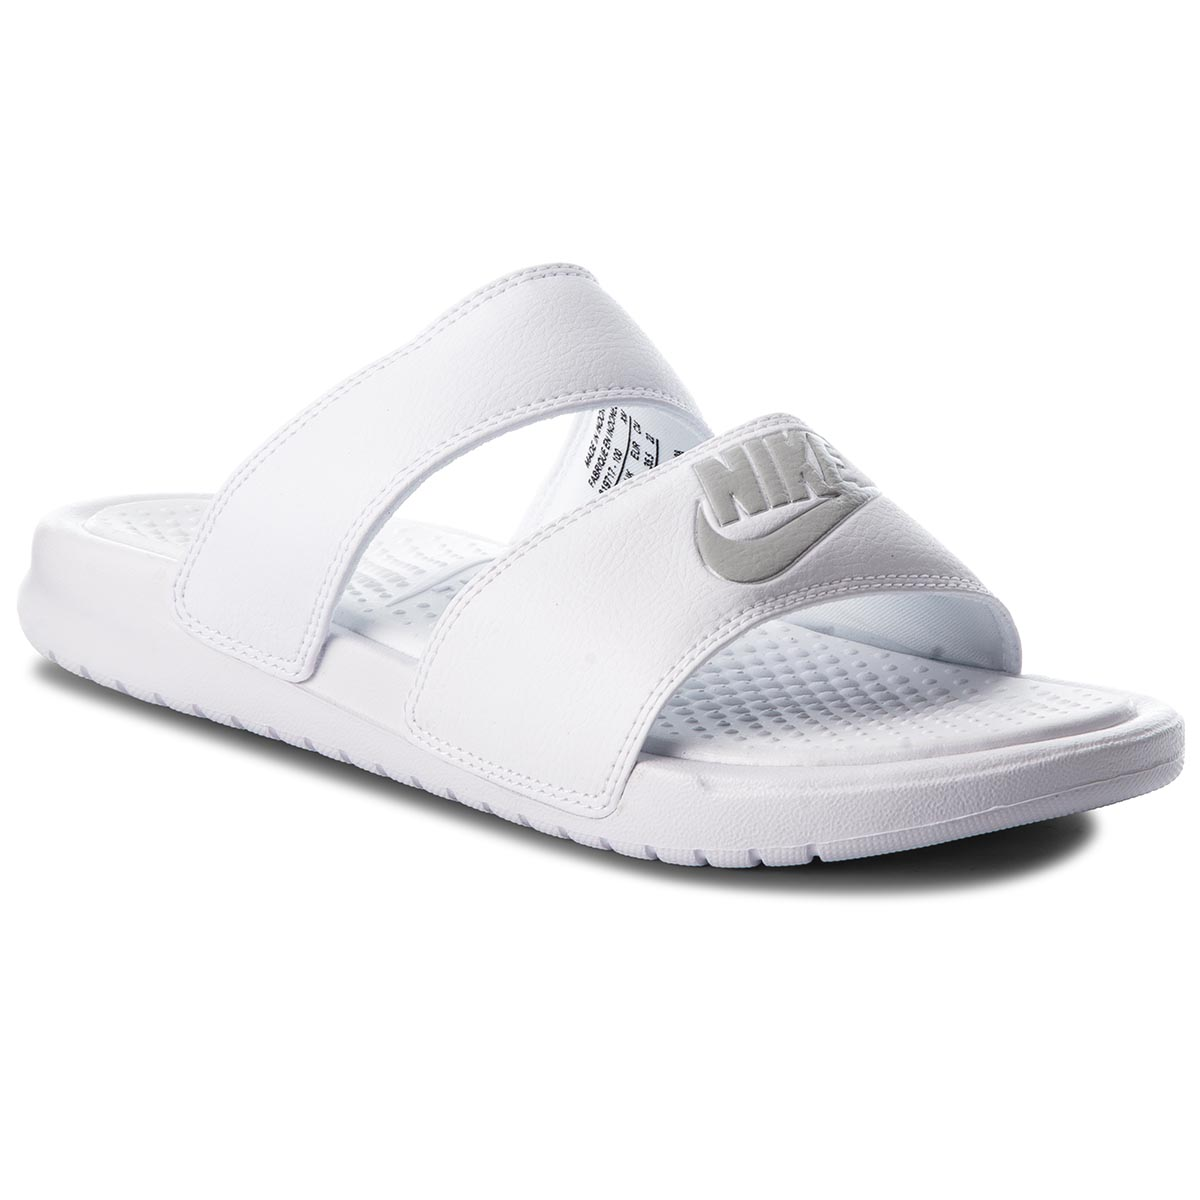 Șlapi NIKE - Benassi Duo Ultra Slide 819717 100 White/Metallic Silver